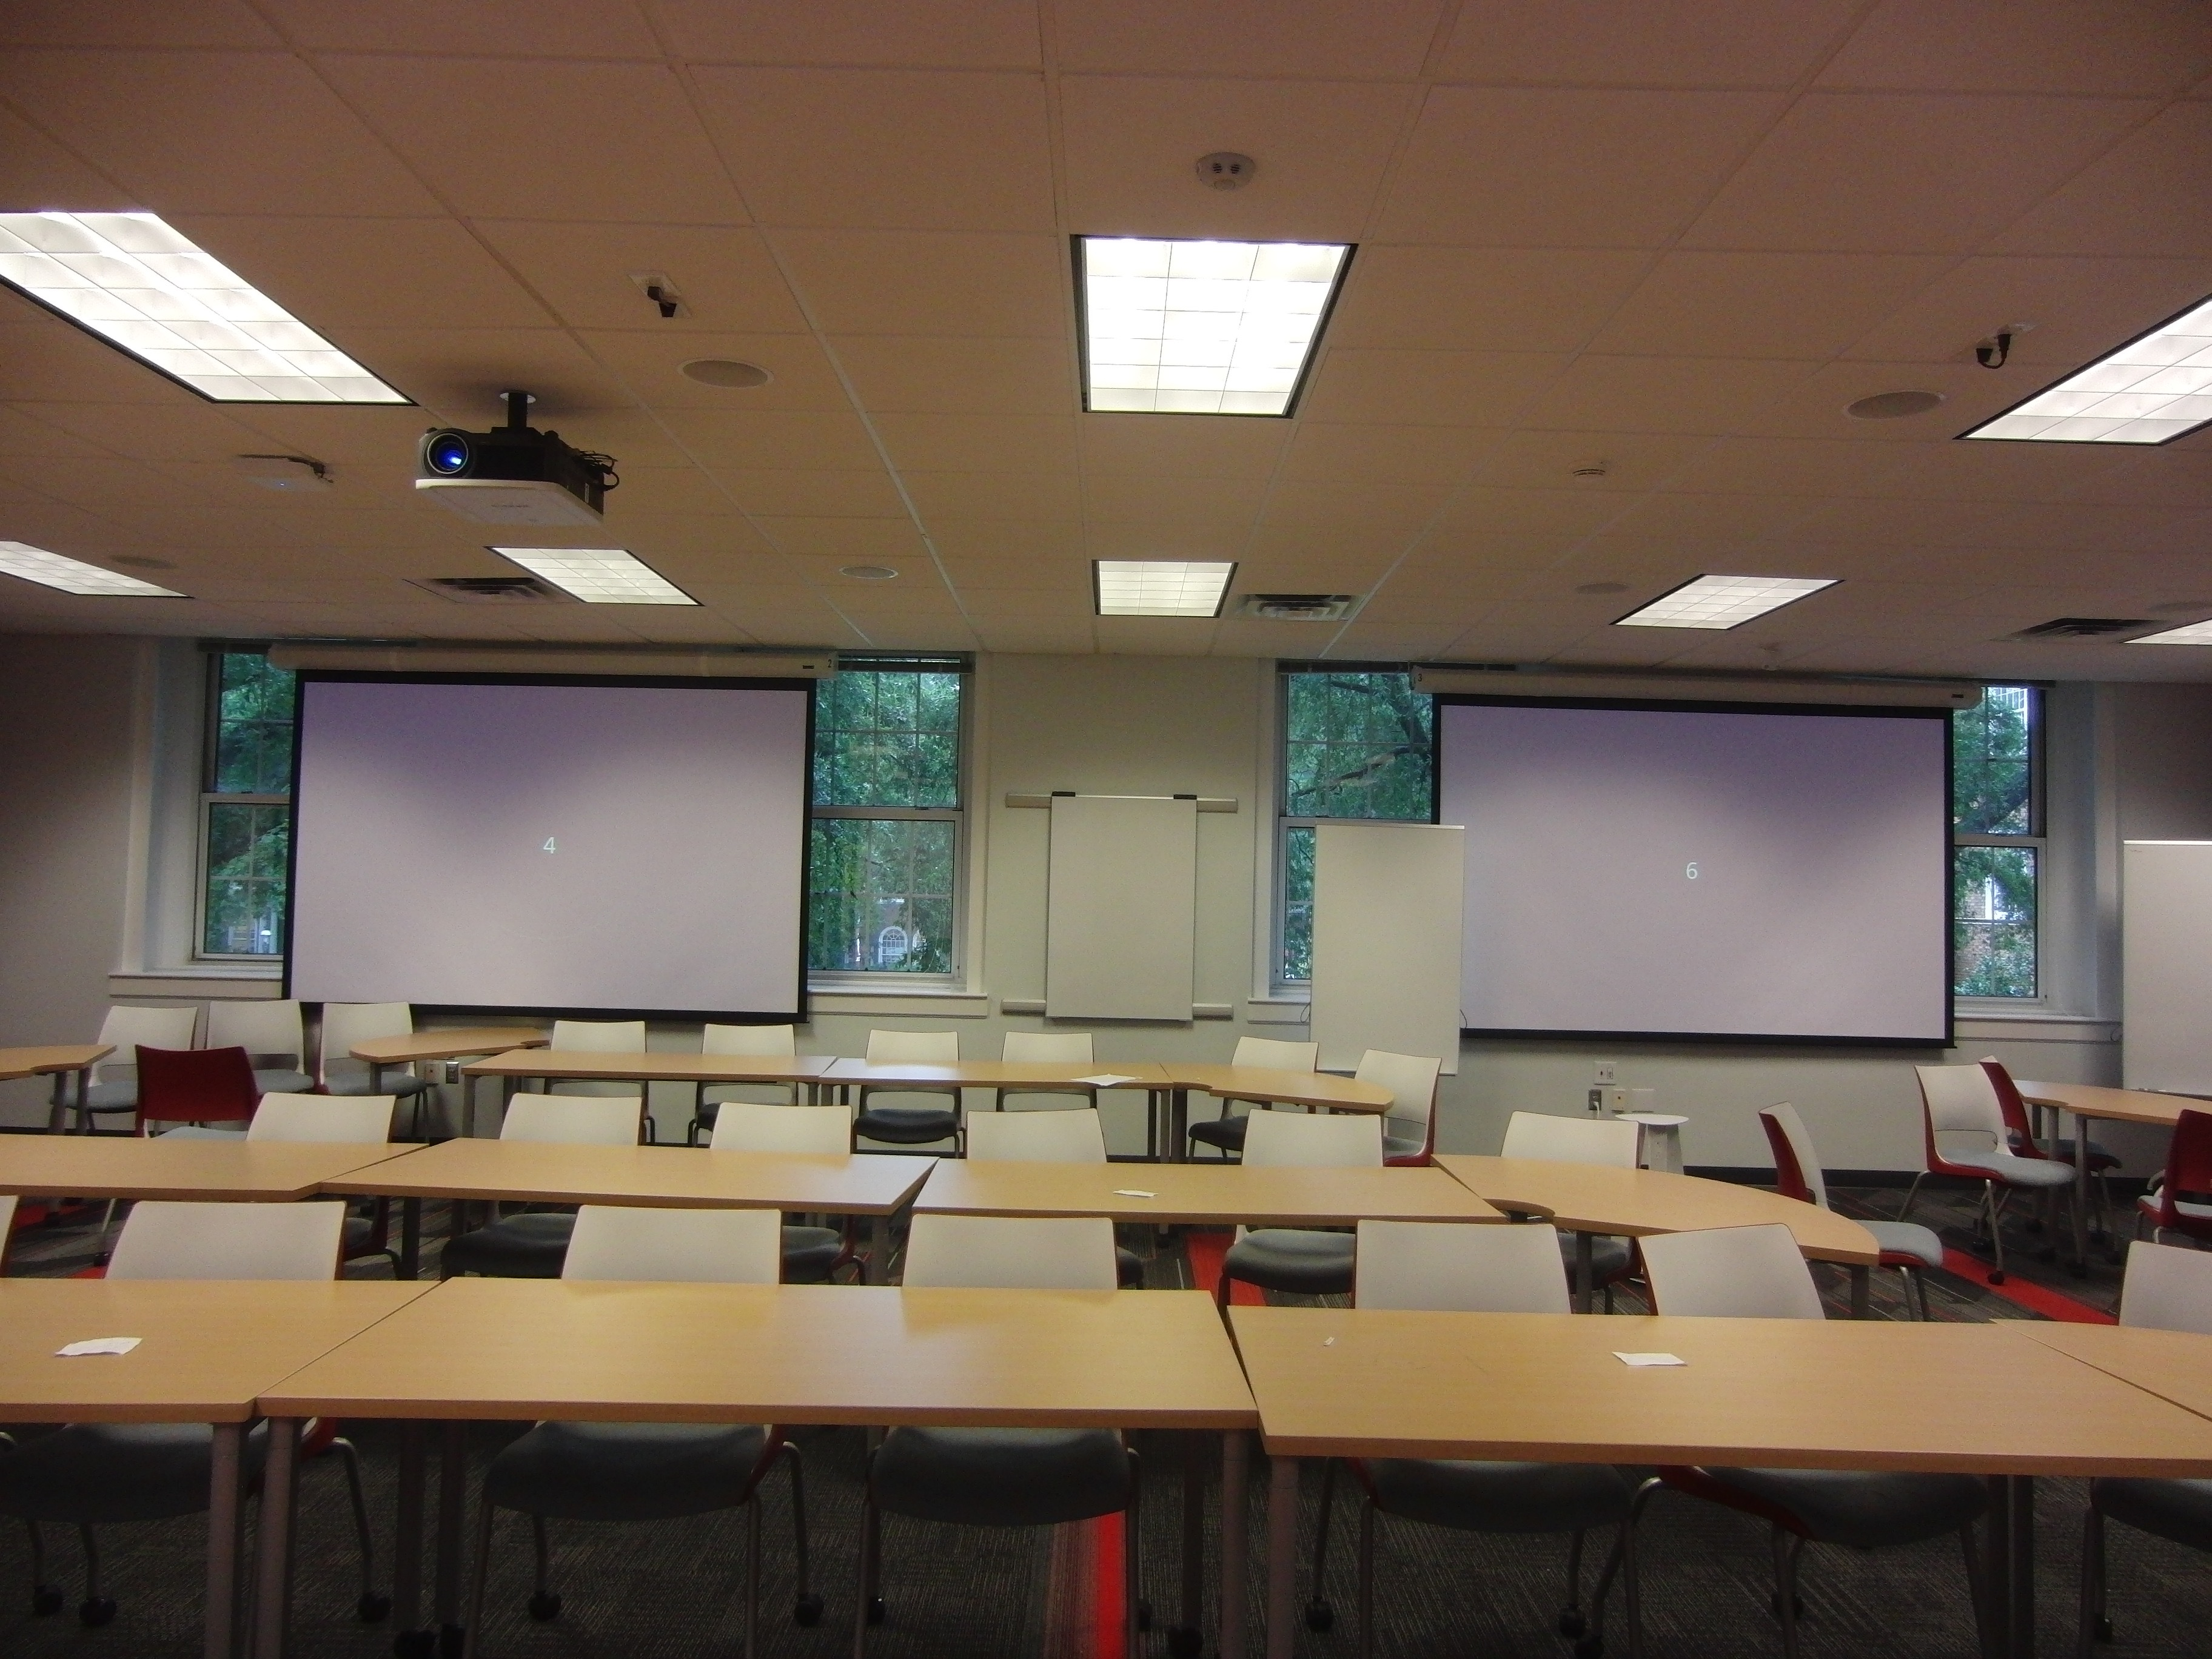 Photo taken from the front center of the room directly to the back center with both projection screens lowered